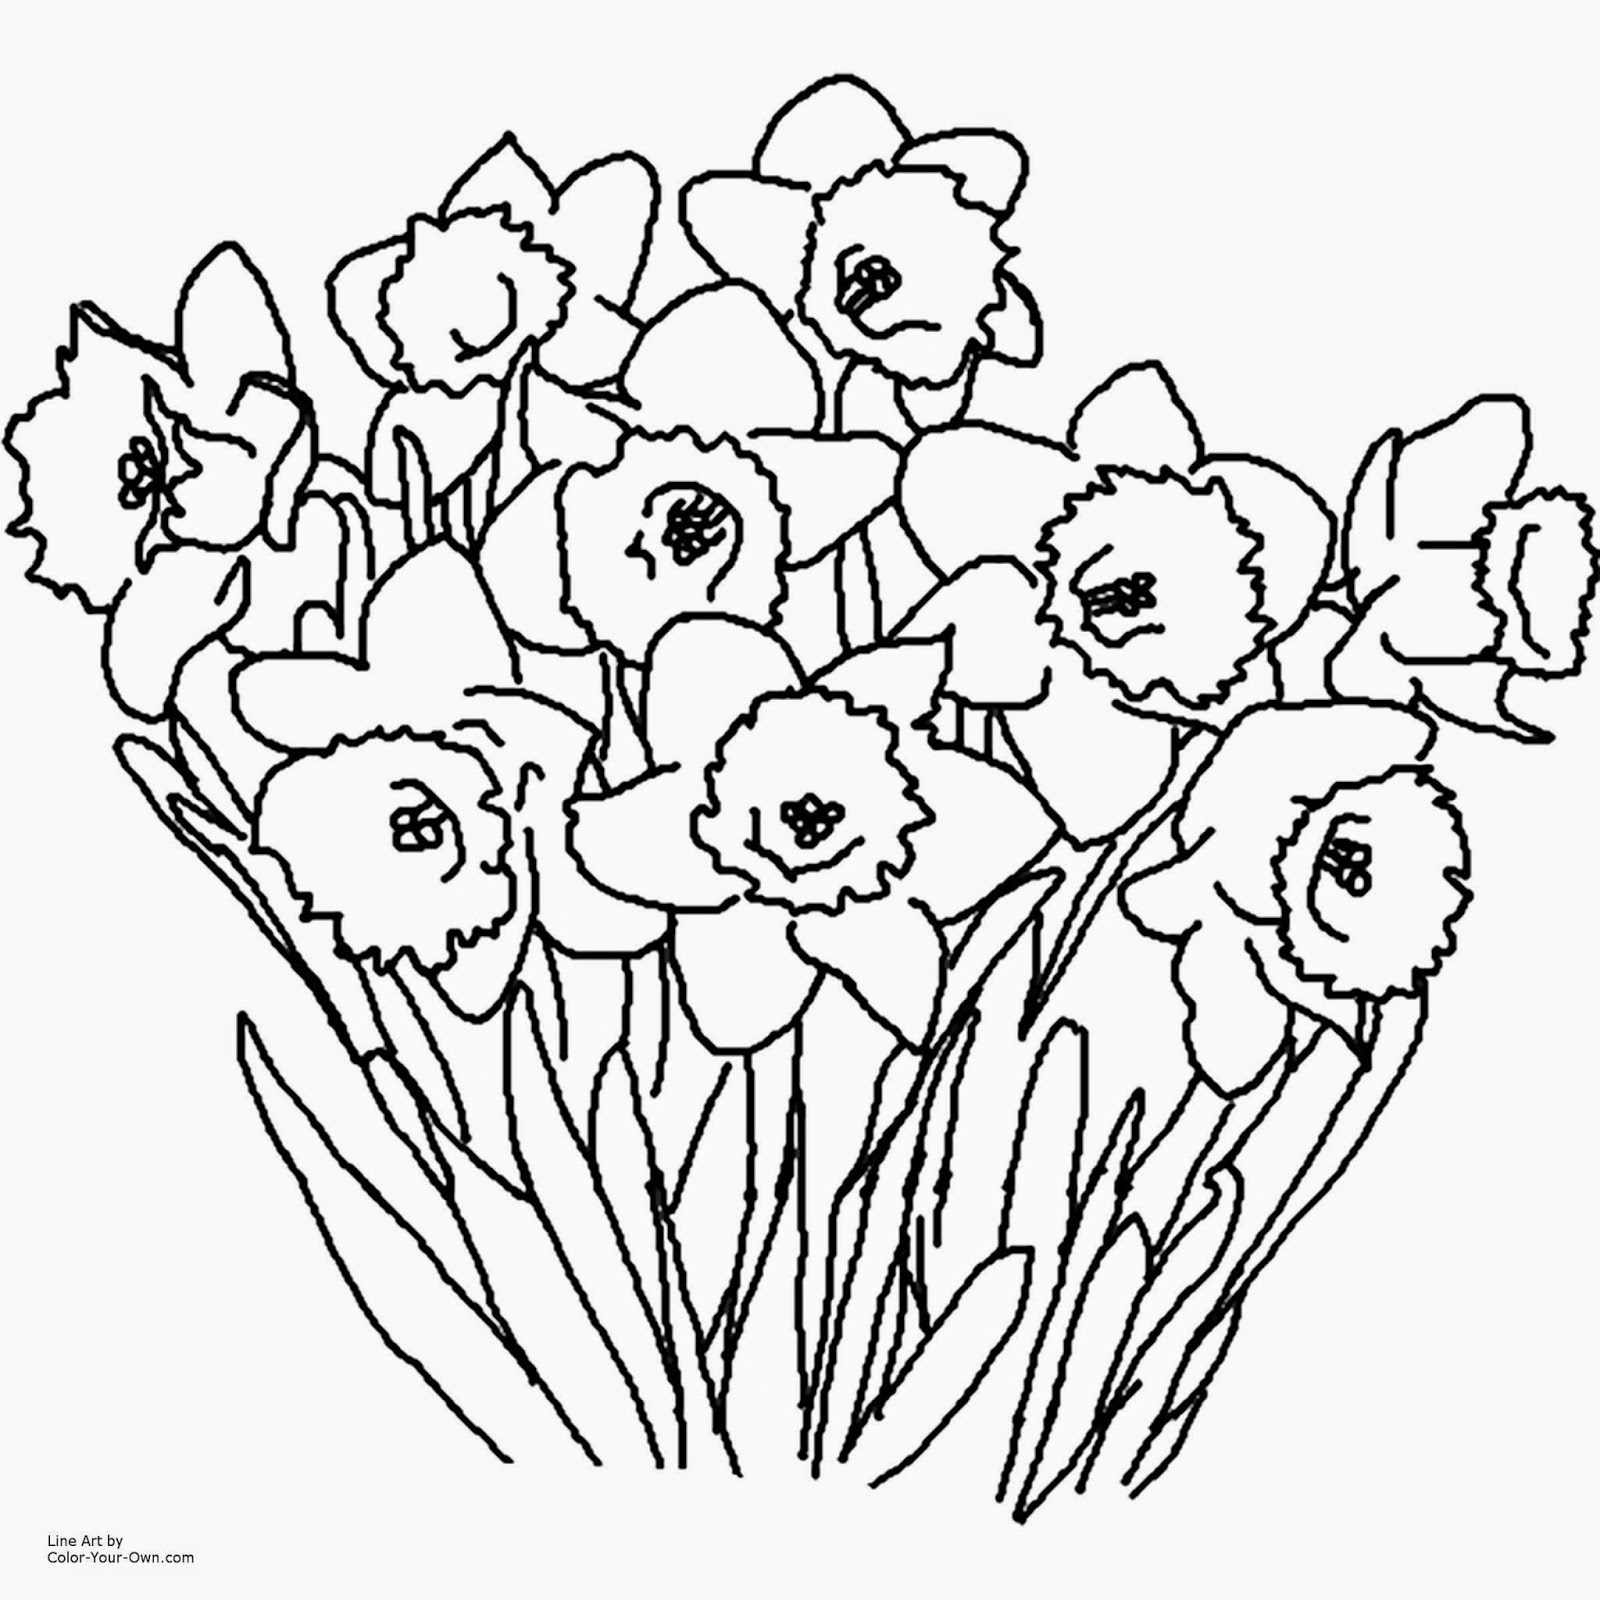 Spring colouring pages free - Free Downloadable Spring Coloring Pages Flower Coloring Pages 4